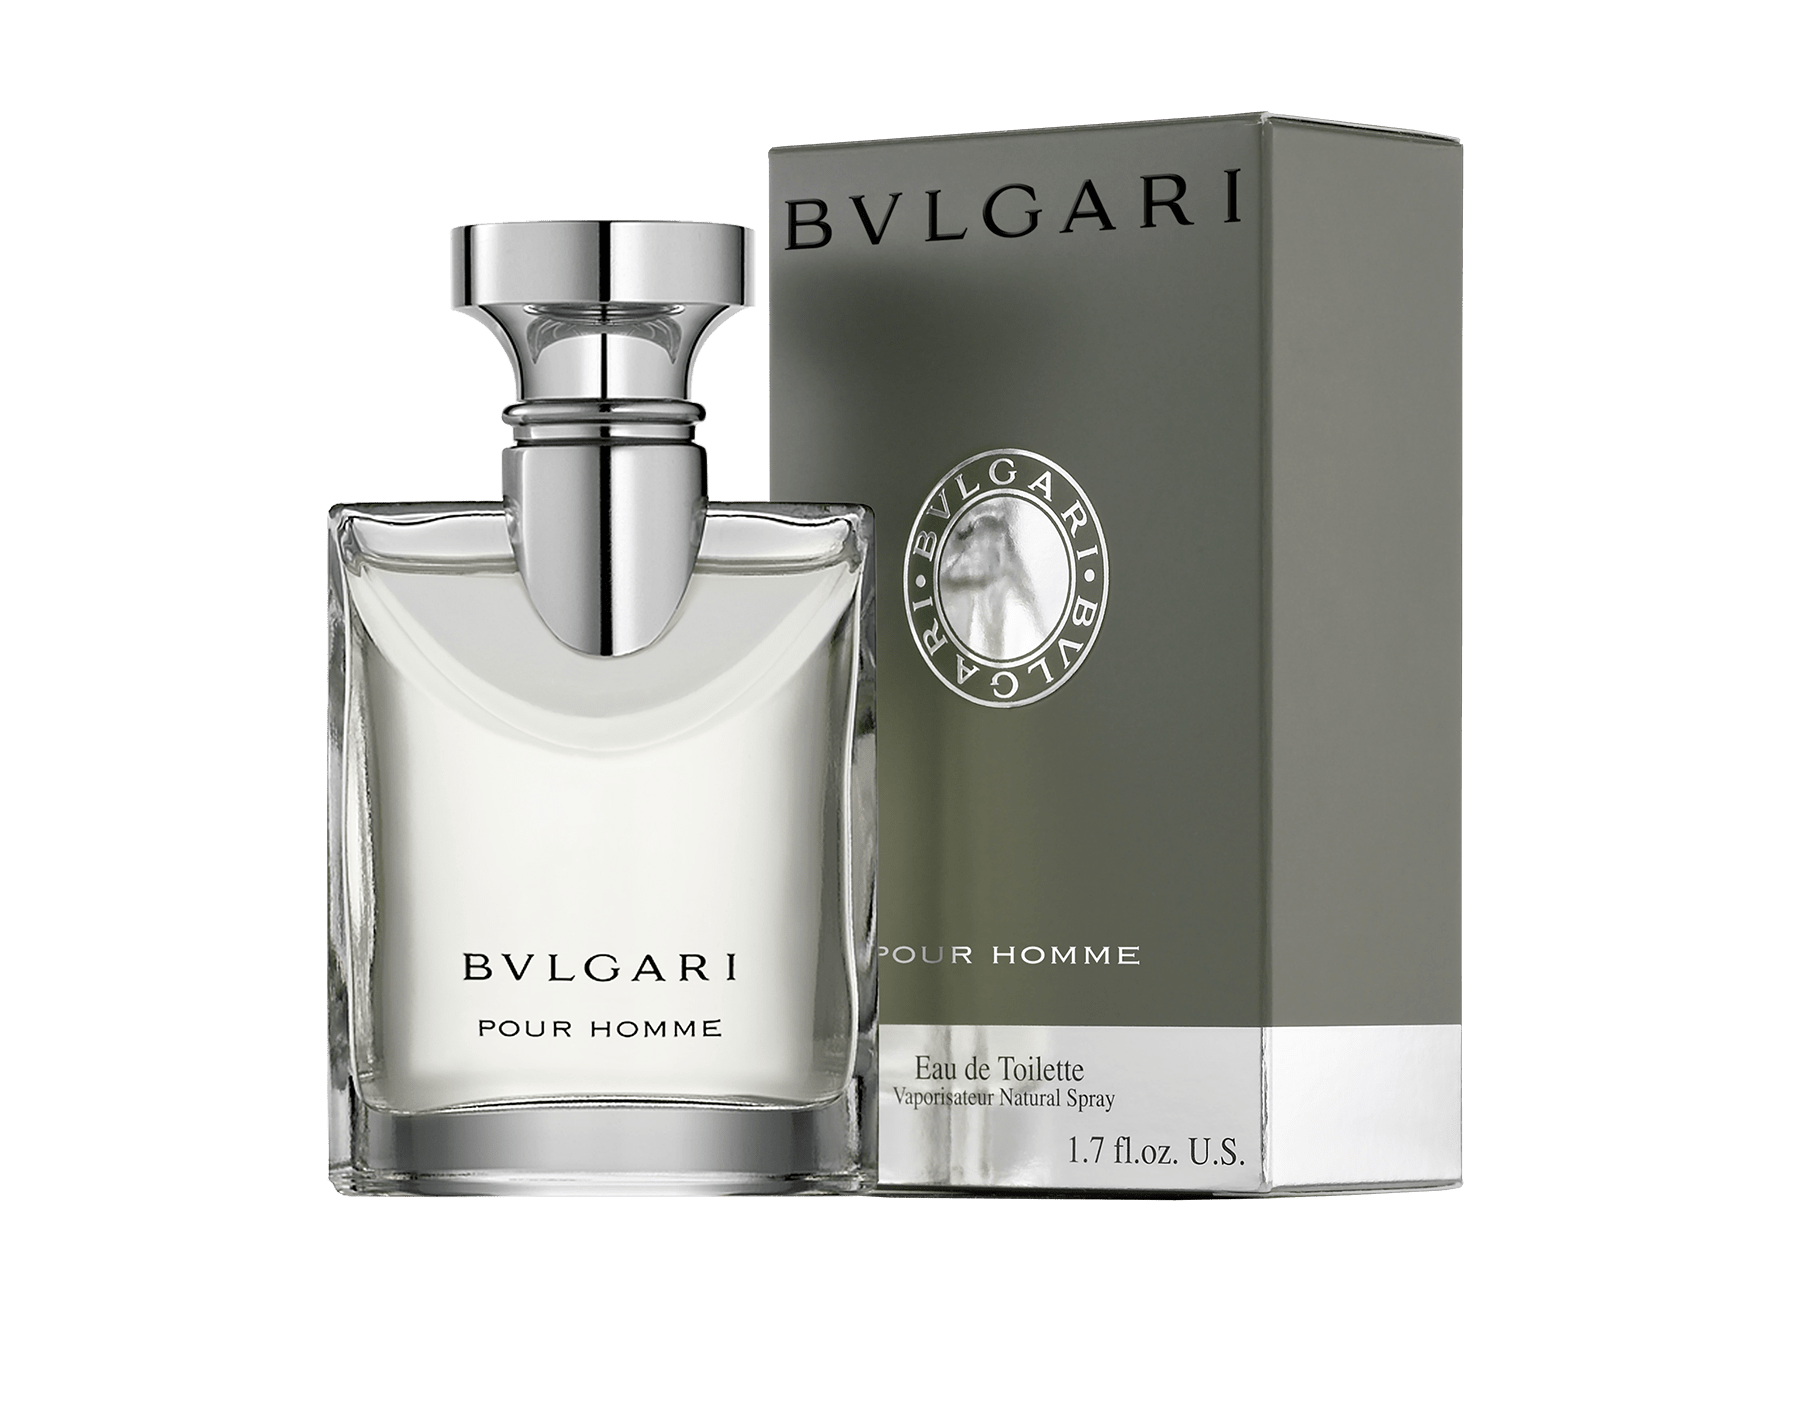 A contemporary and classic fragrance for men 83110 image 3